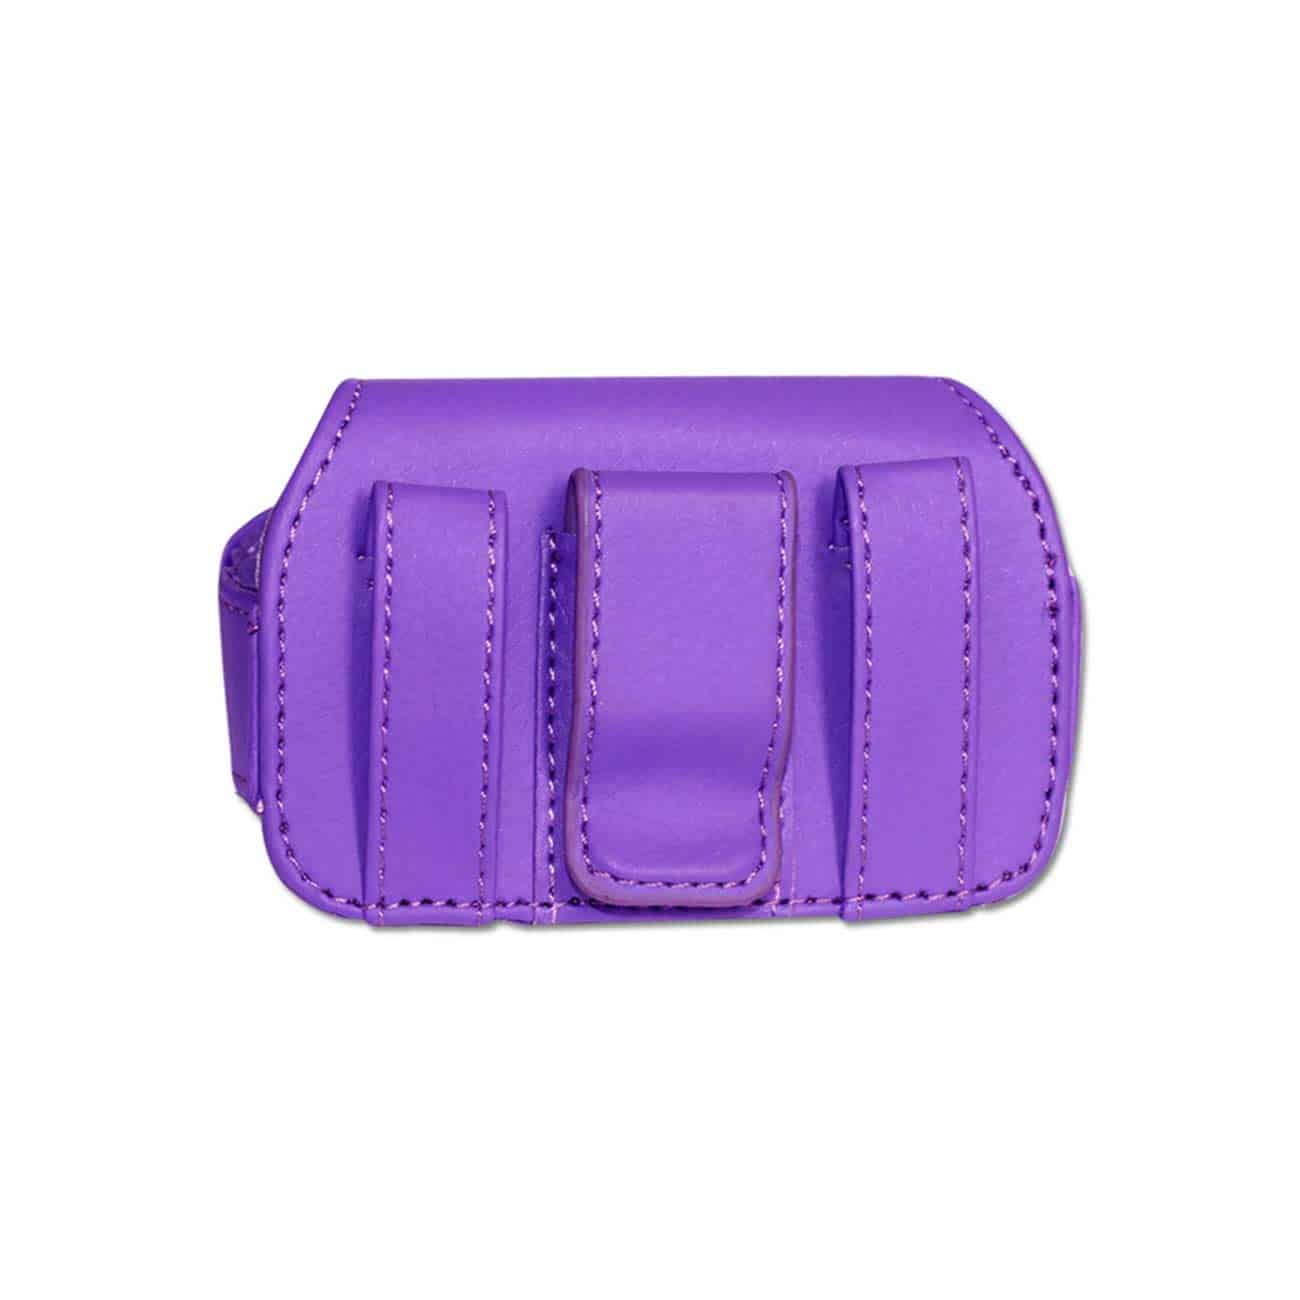 HORIZONTAL POUCH HP11A S PURPLE 3.5X1.9X0.9 INCHES